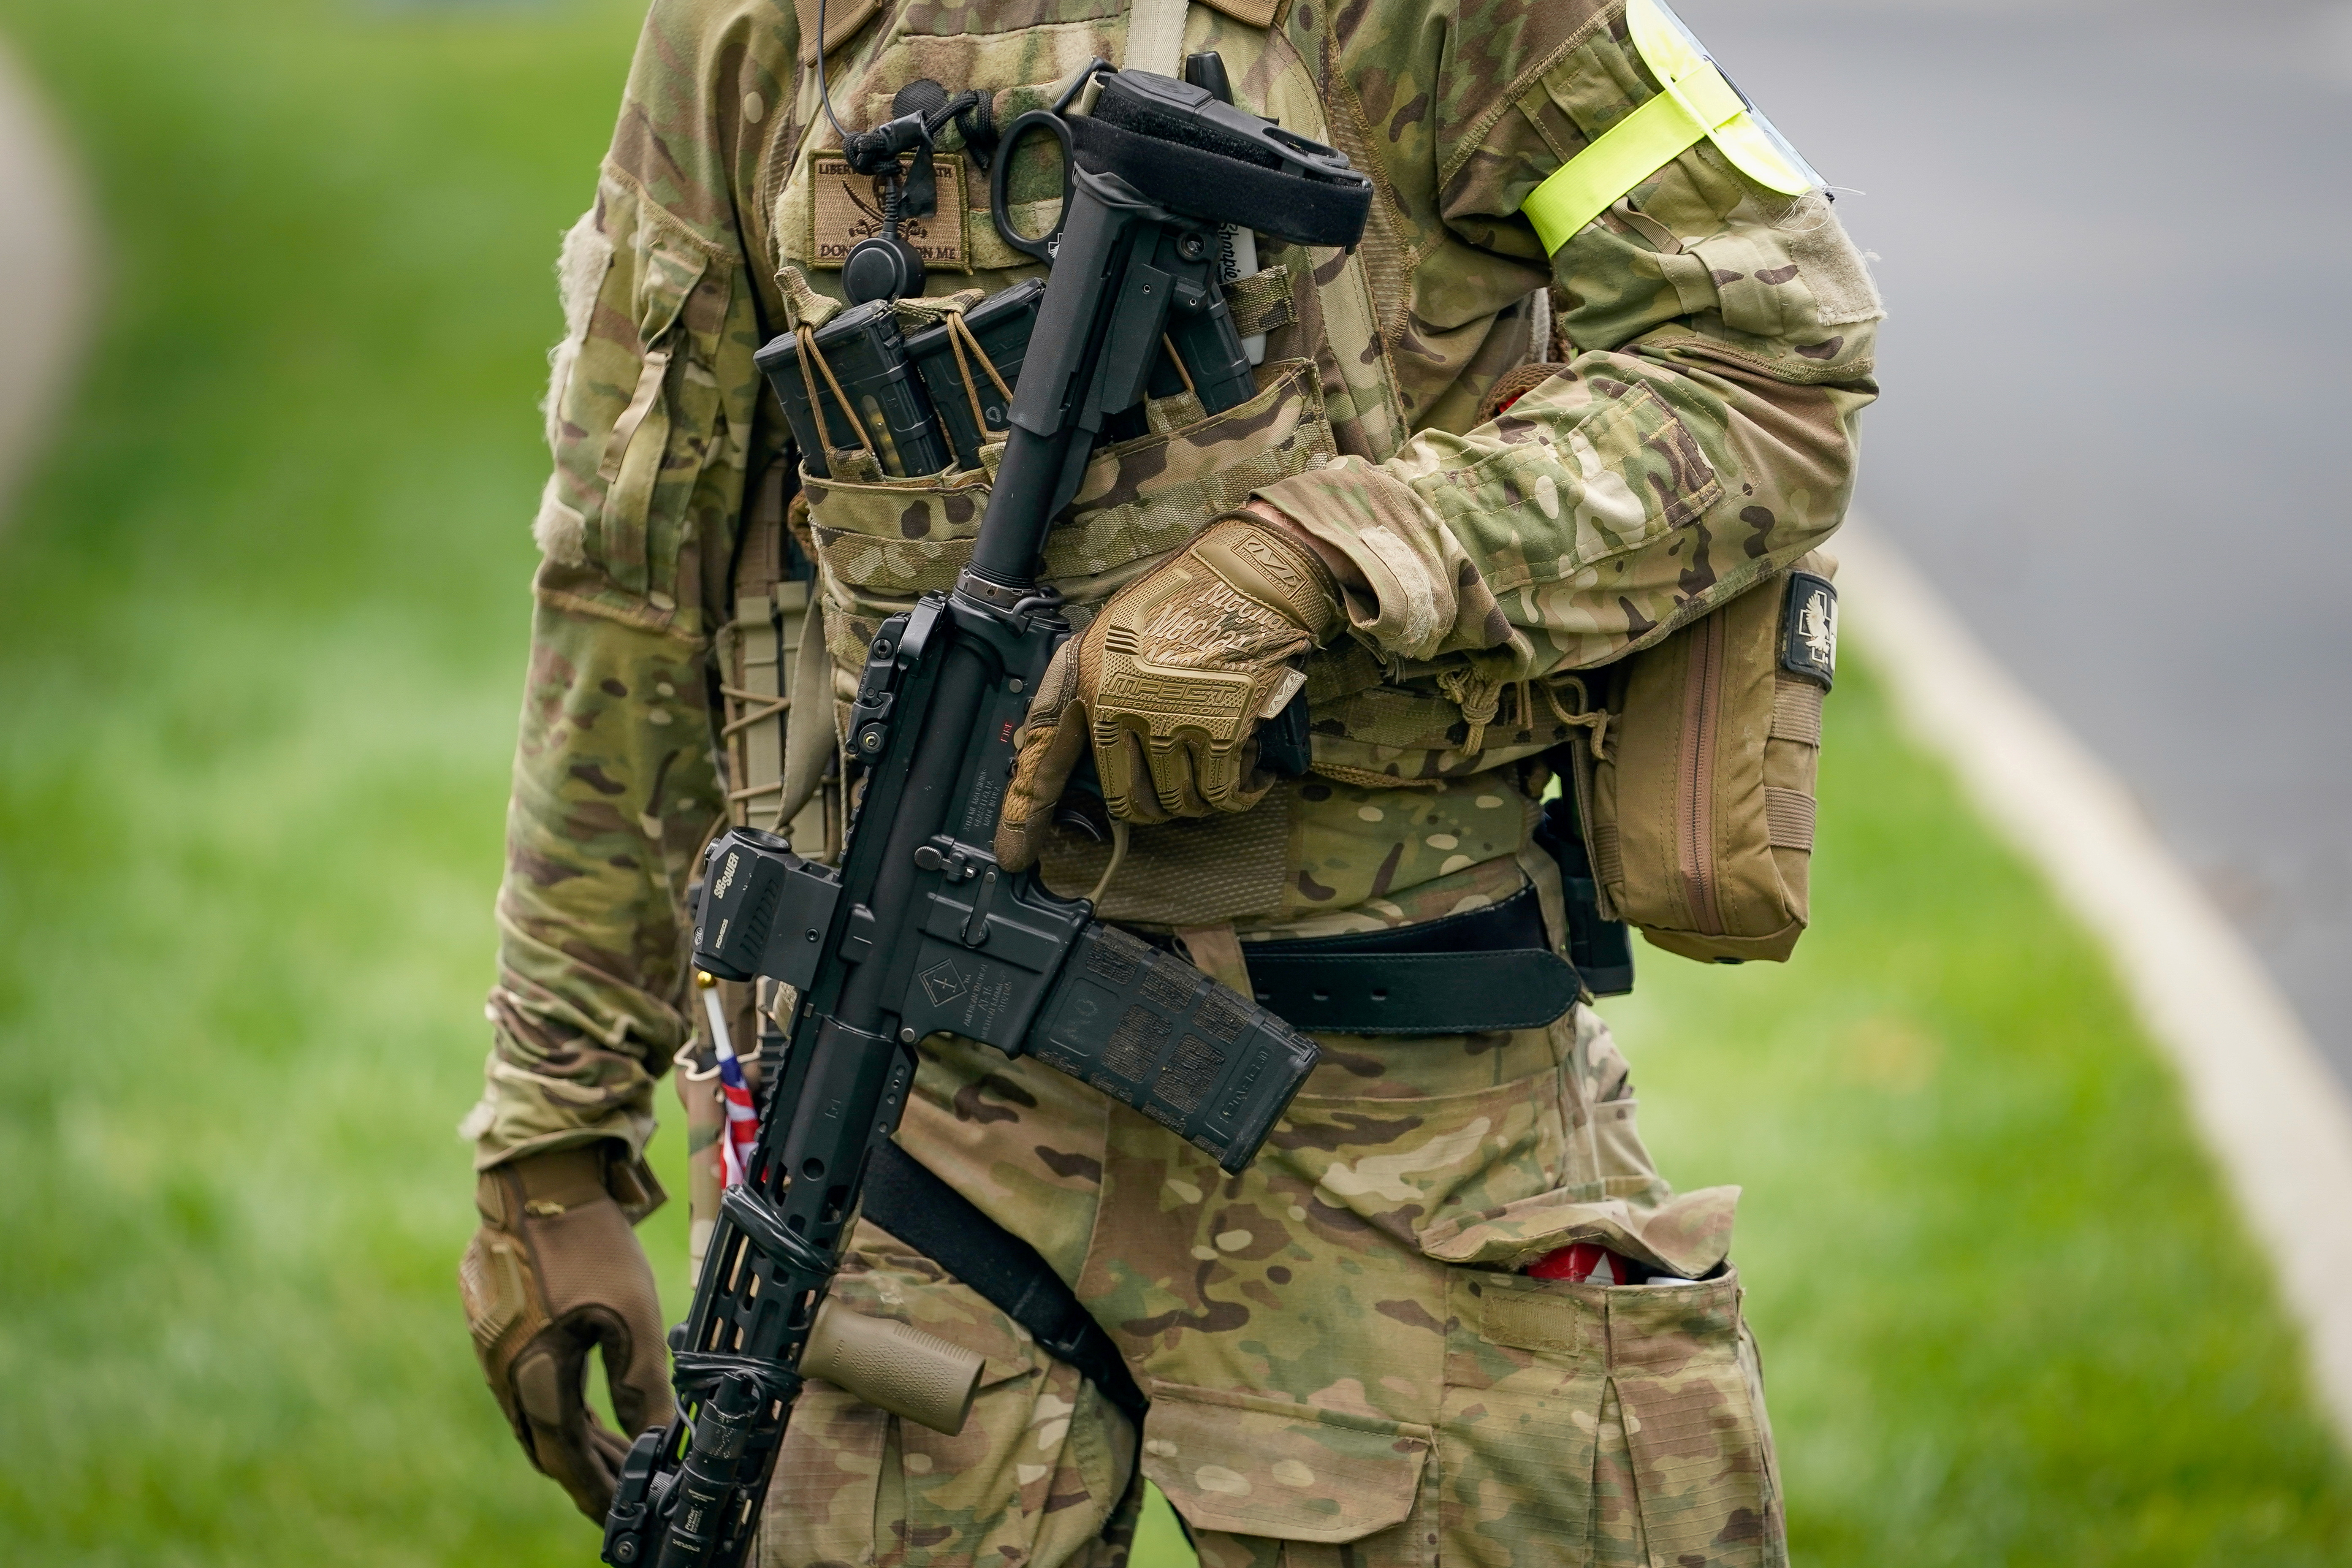 A member with the Three Percent Militia provides security for a